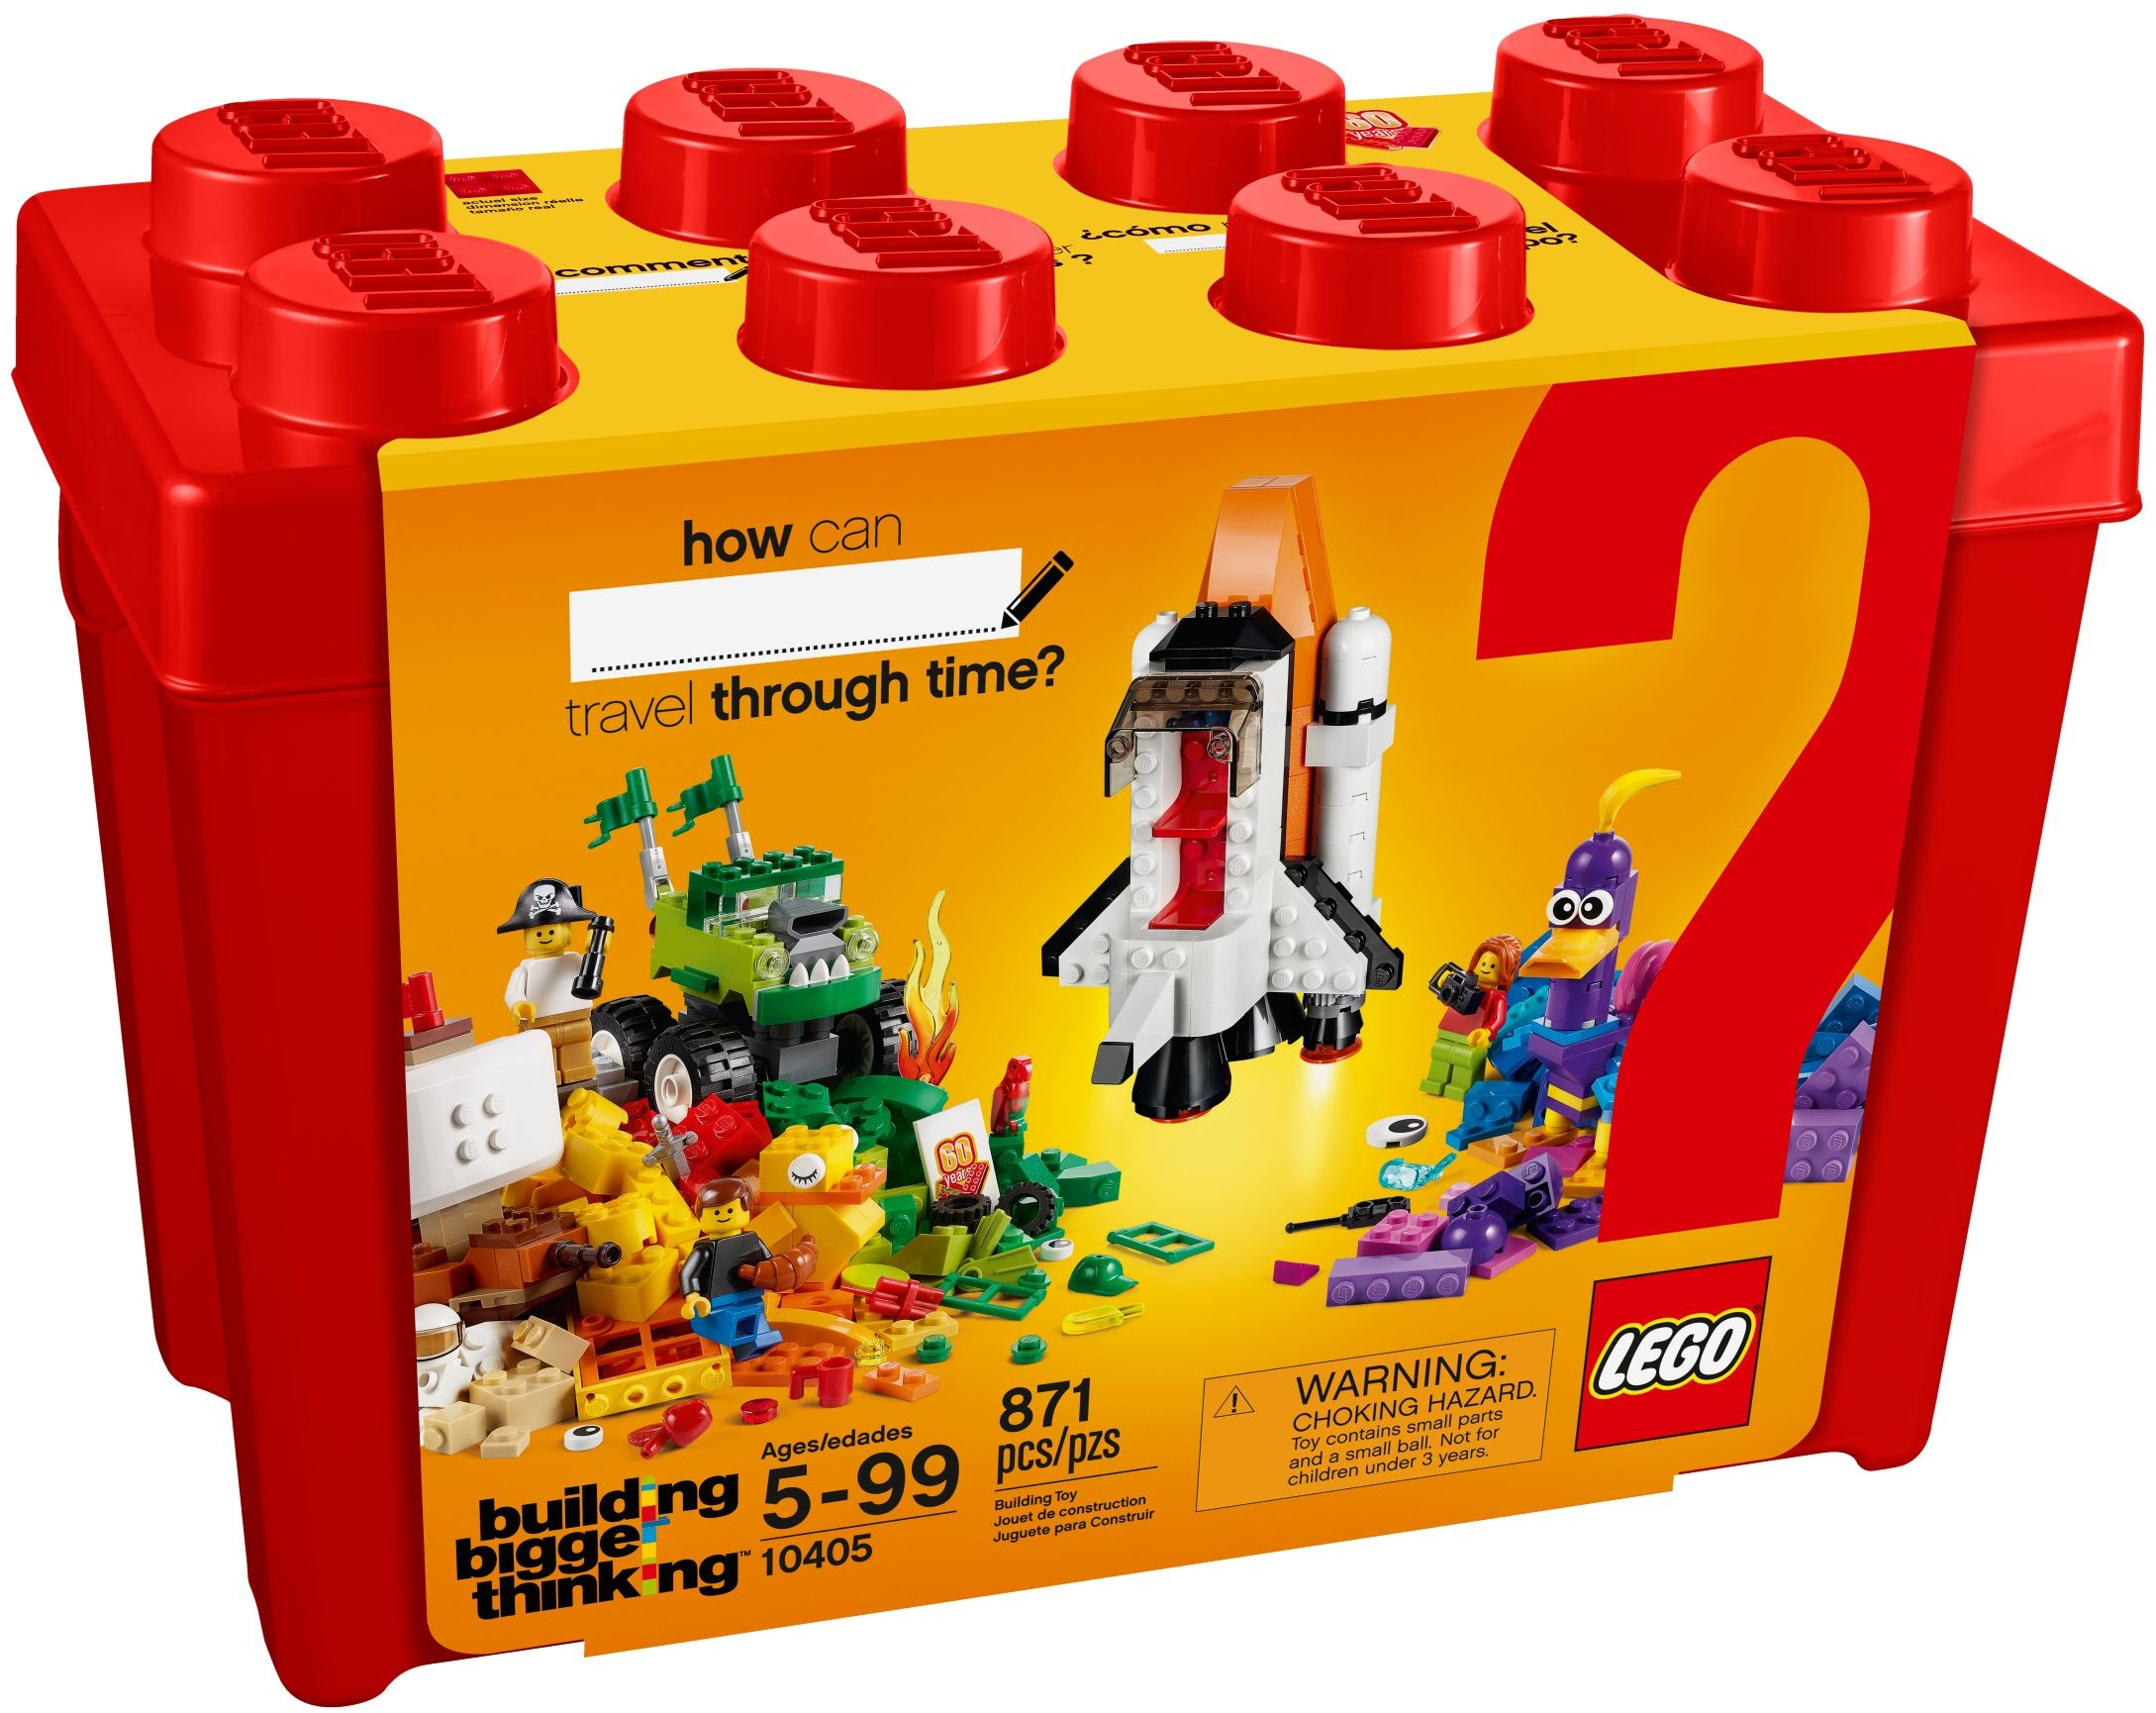 https://images.brickset.com/sets/AdditionalImages/10405-1/10405_alt1.jpg